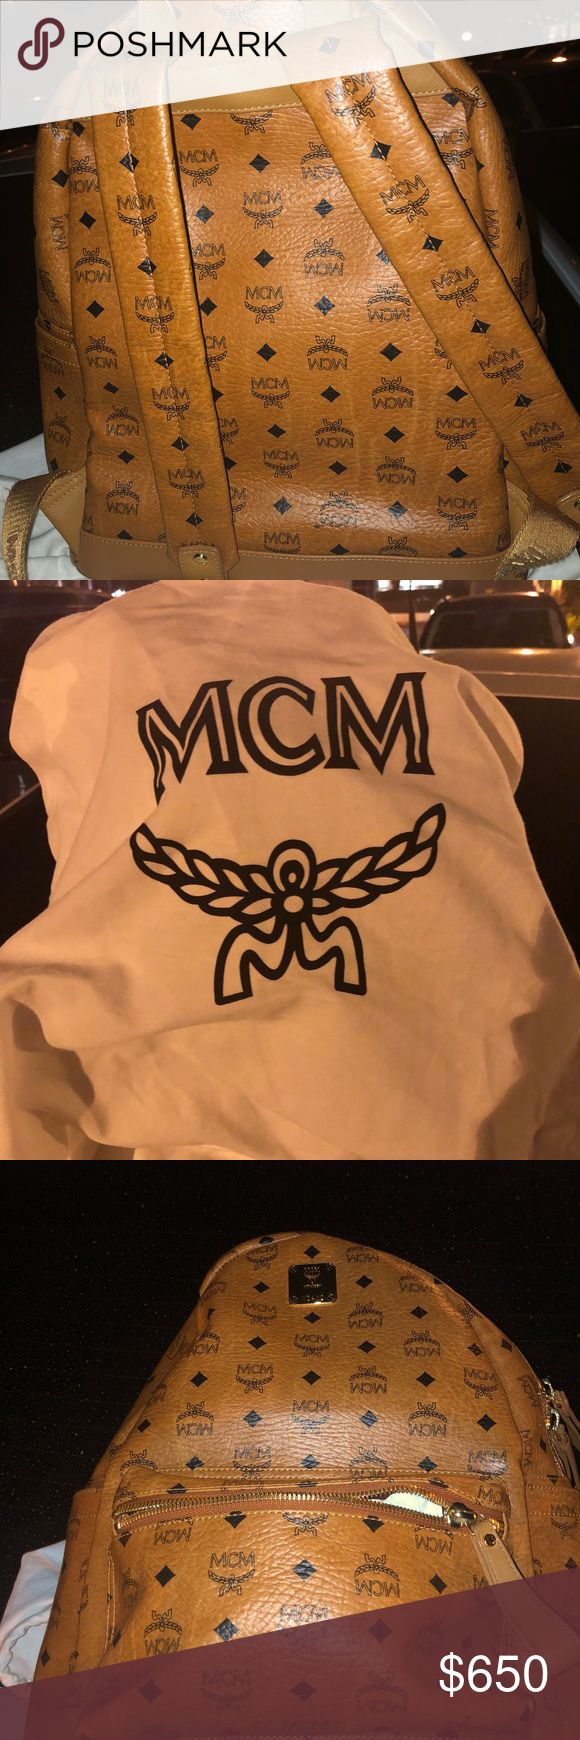 Medium sized MCM backpack . Great condition, willing to negotiate price MCM Bags Backpacks